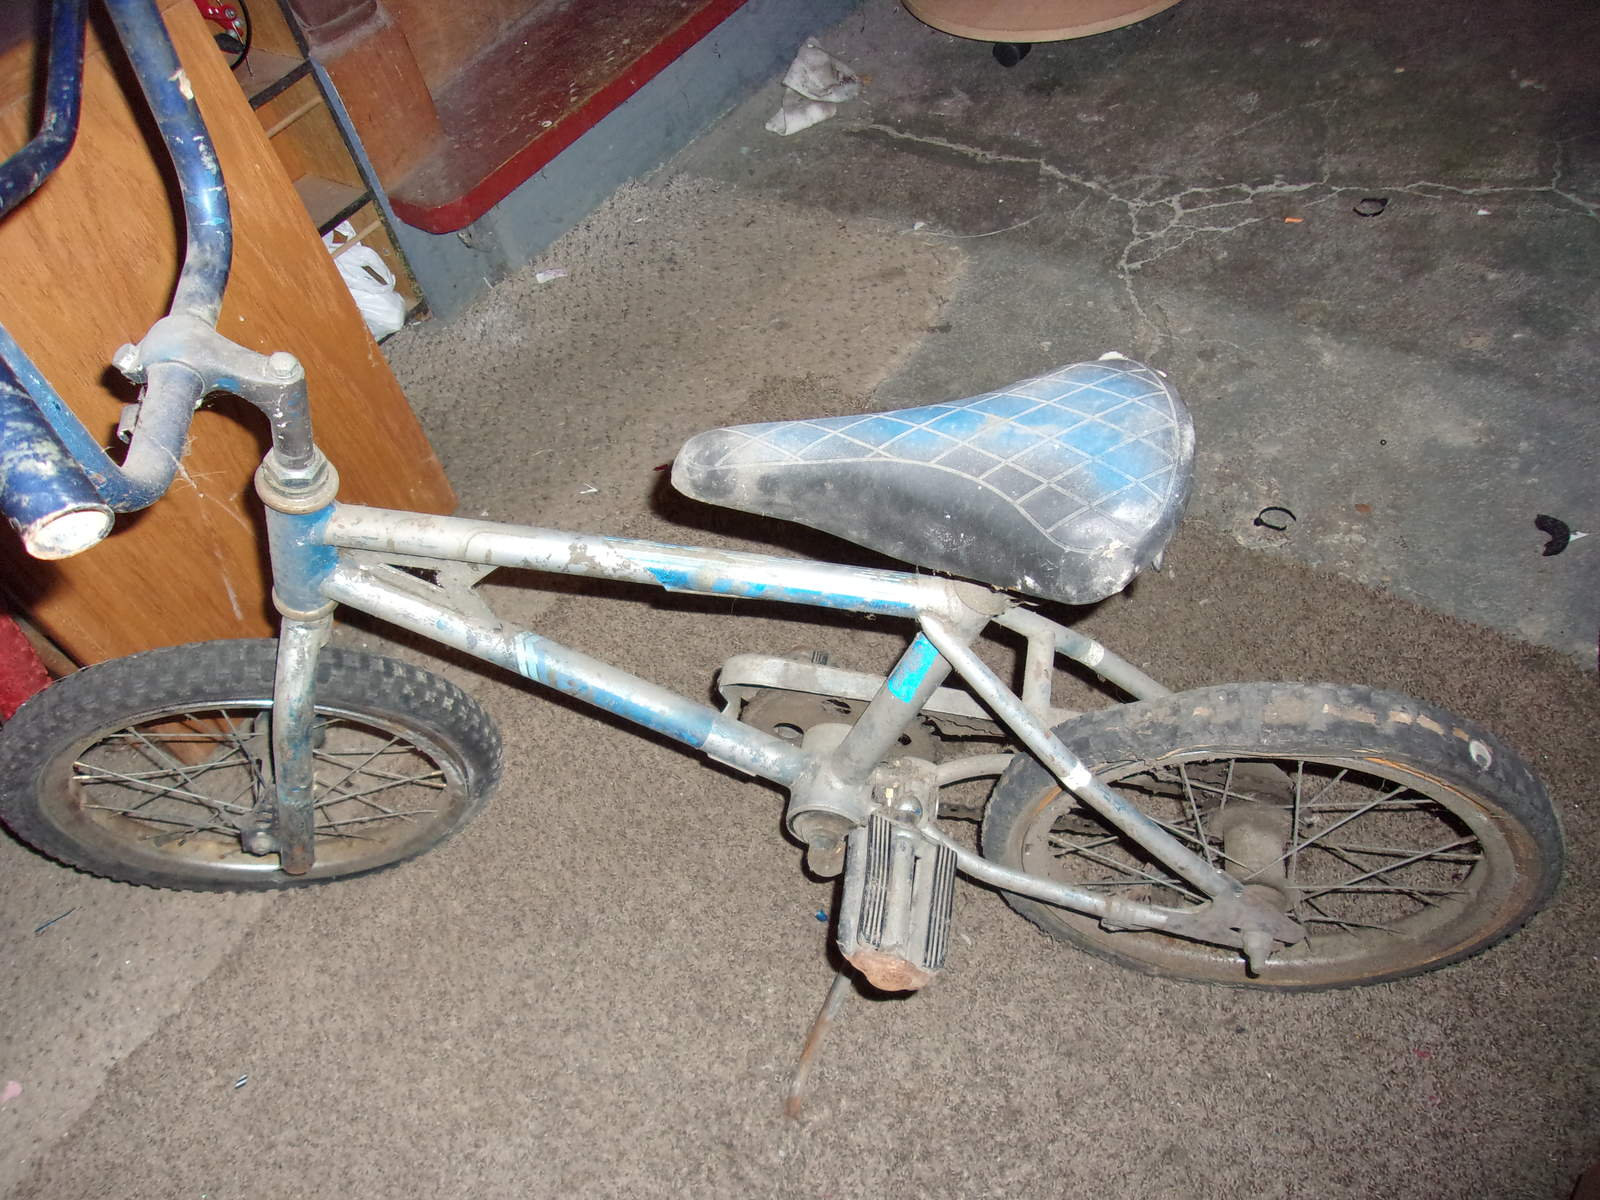 http://uploads.bmxmuseum.com/user-images/61851/102_01105c021699ec.jpg